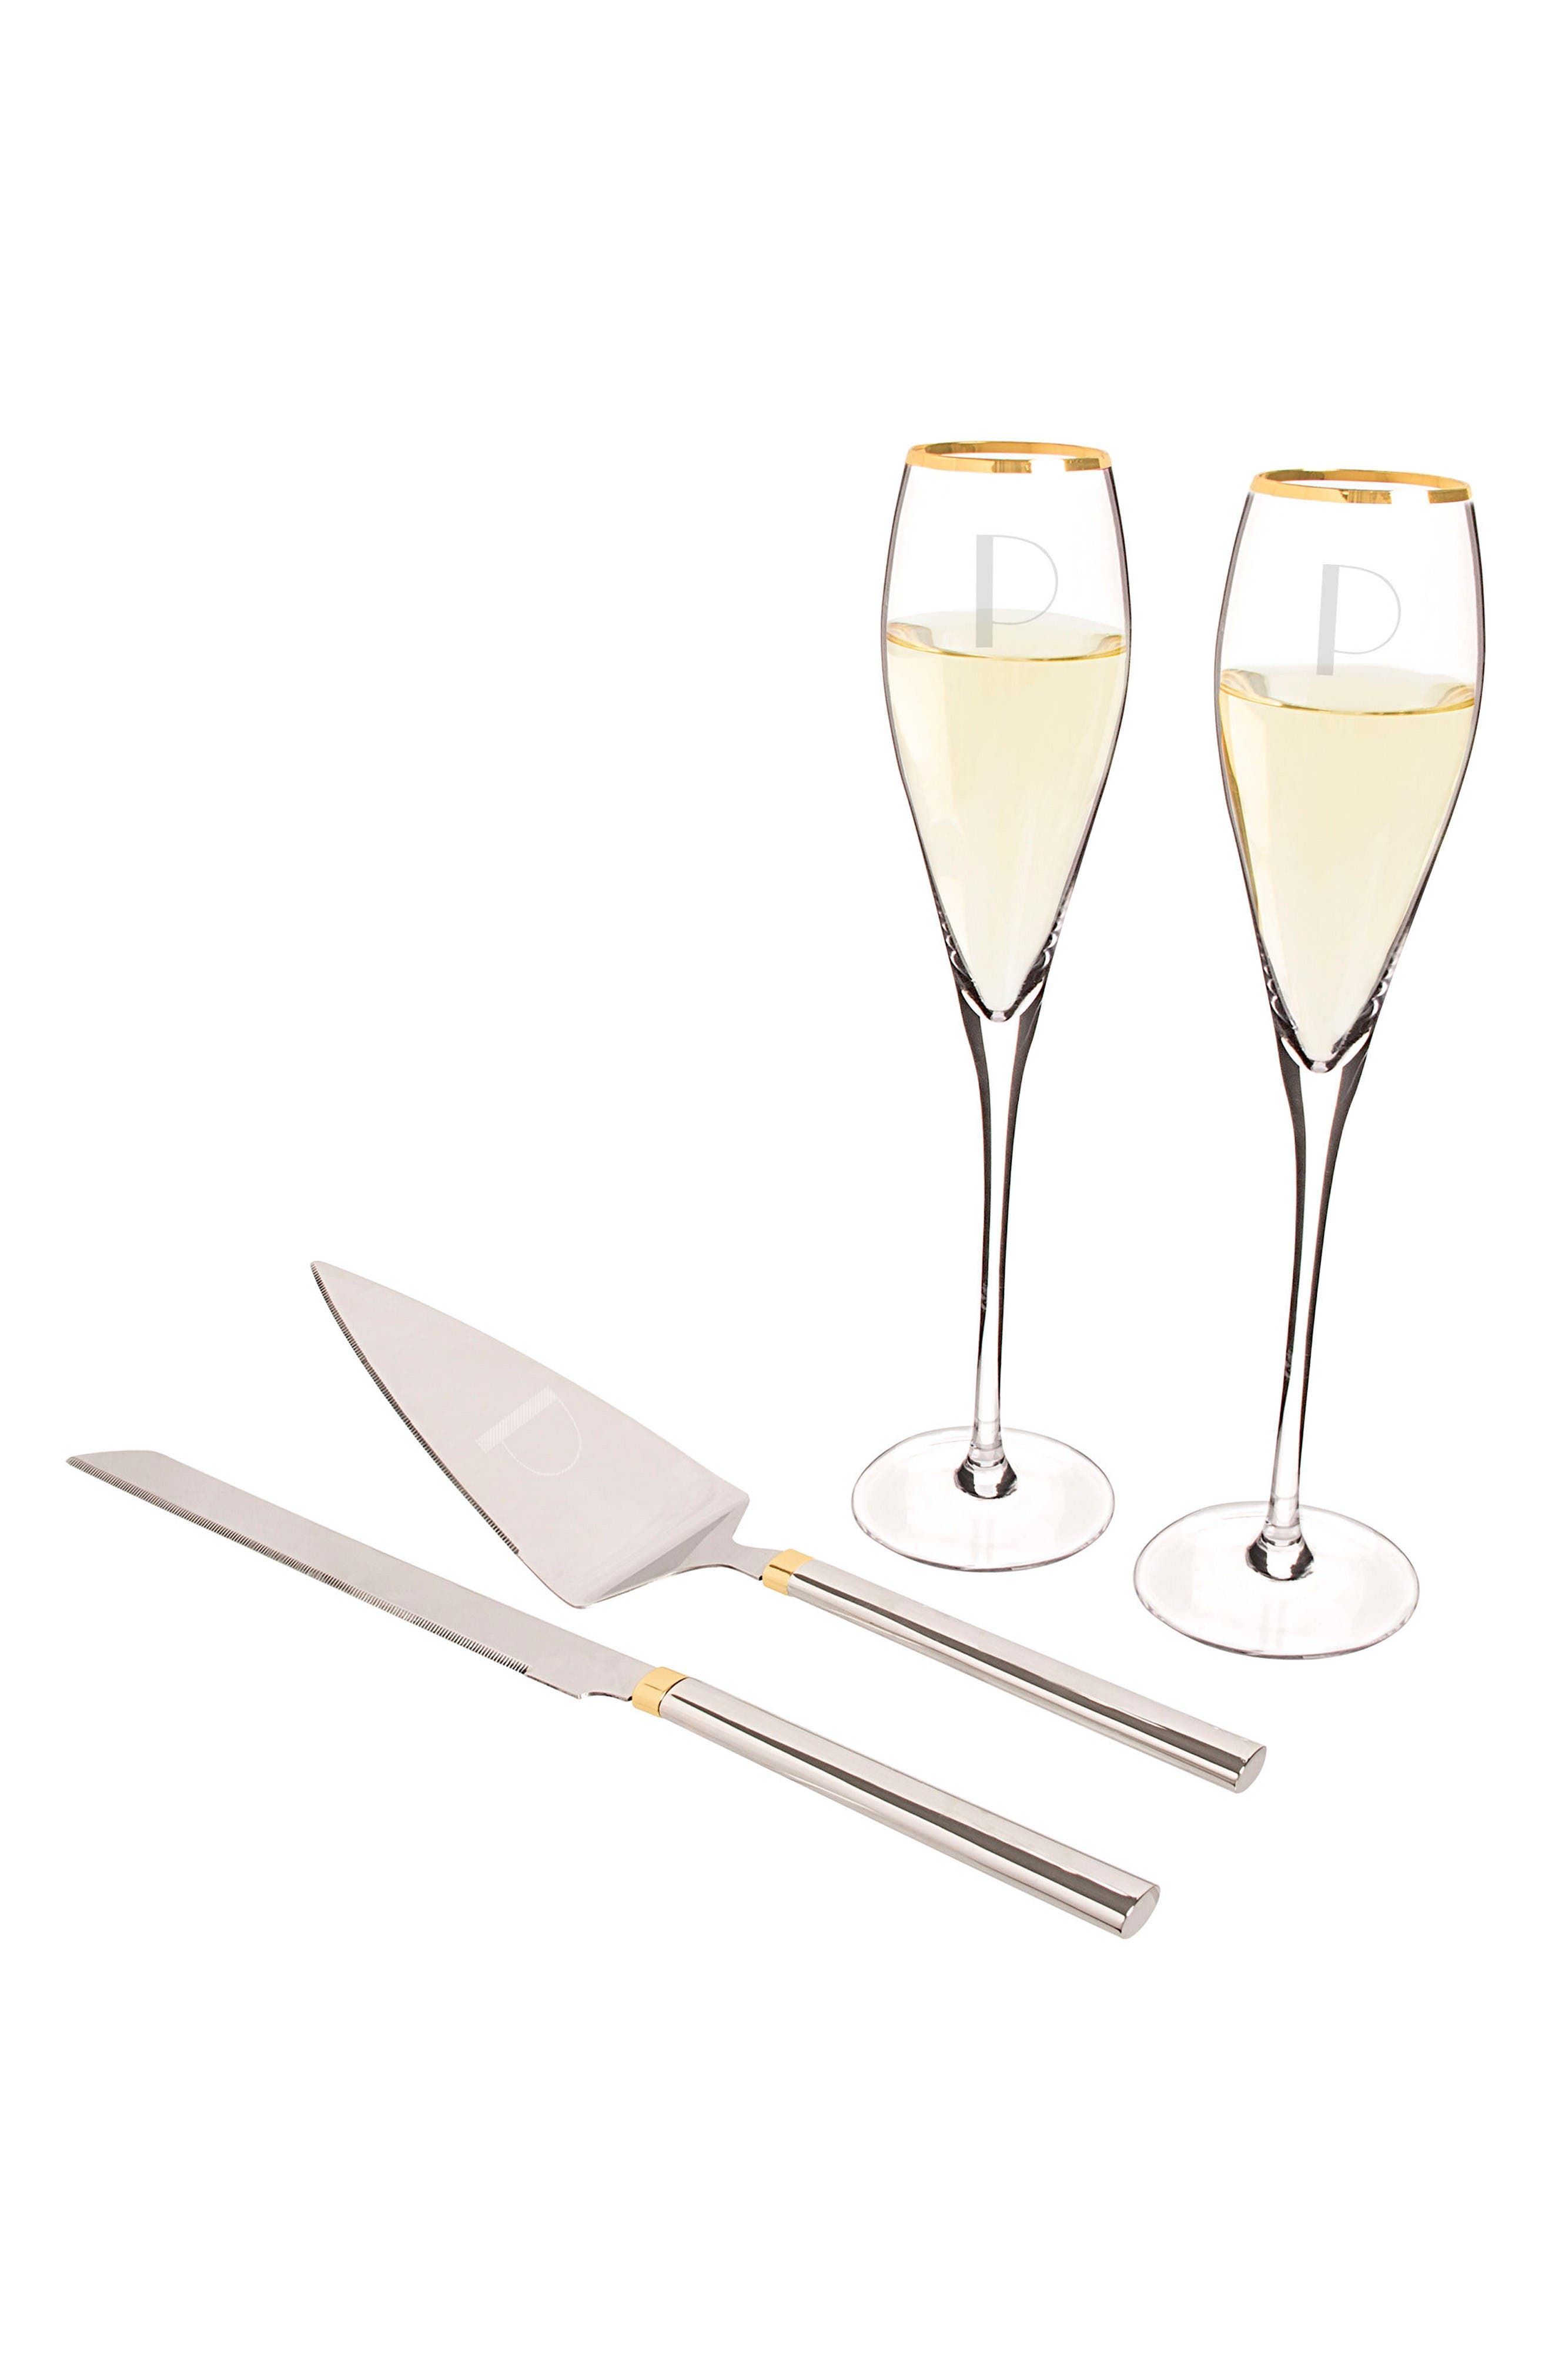 Cathy's Concepts Monogram Champagne Flutes & Cake Server Set